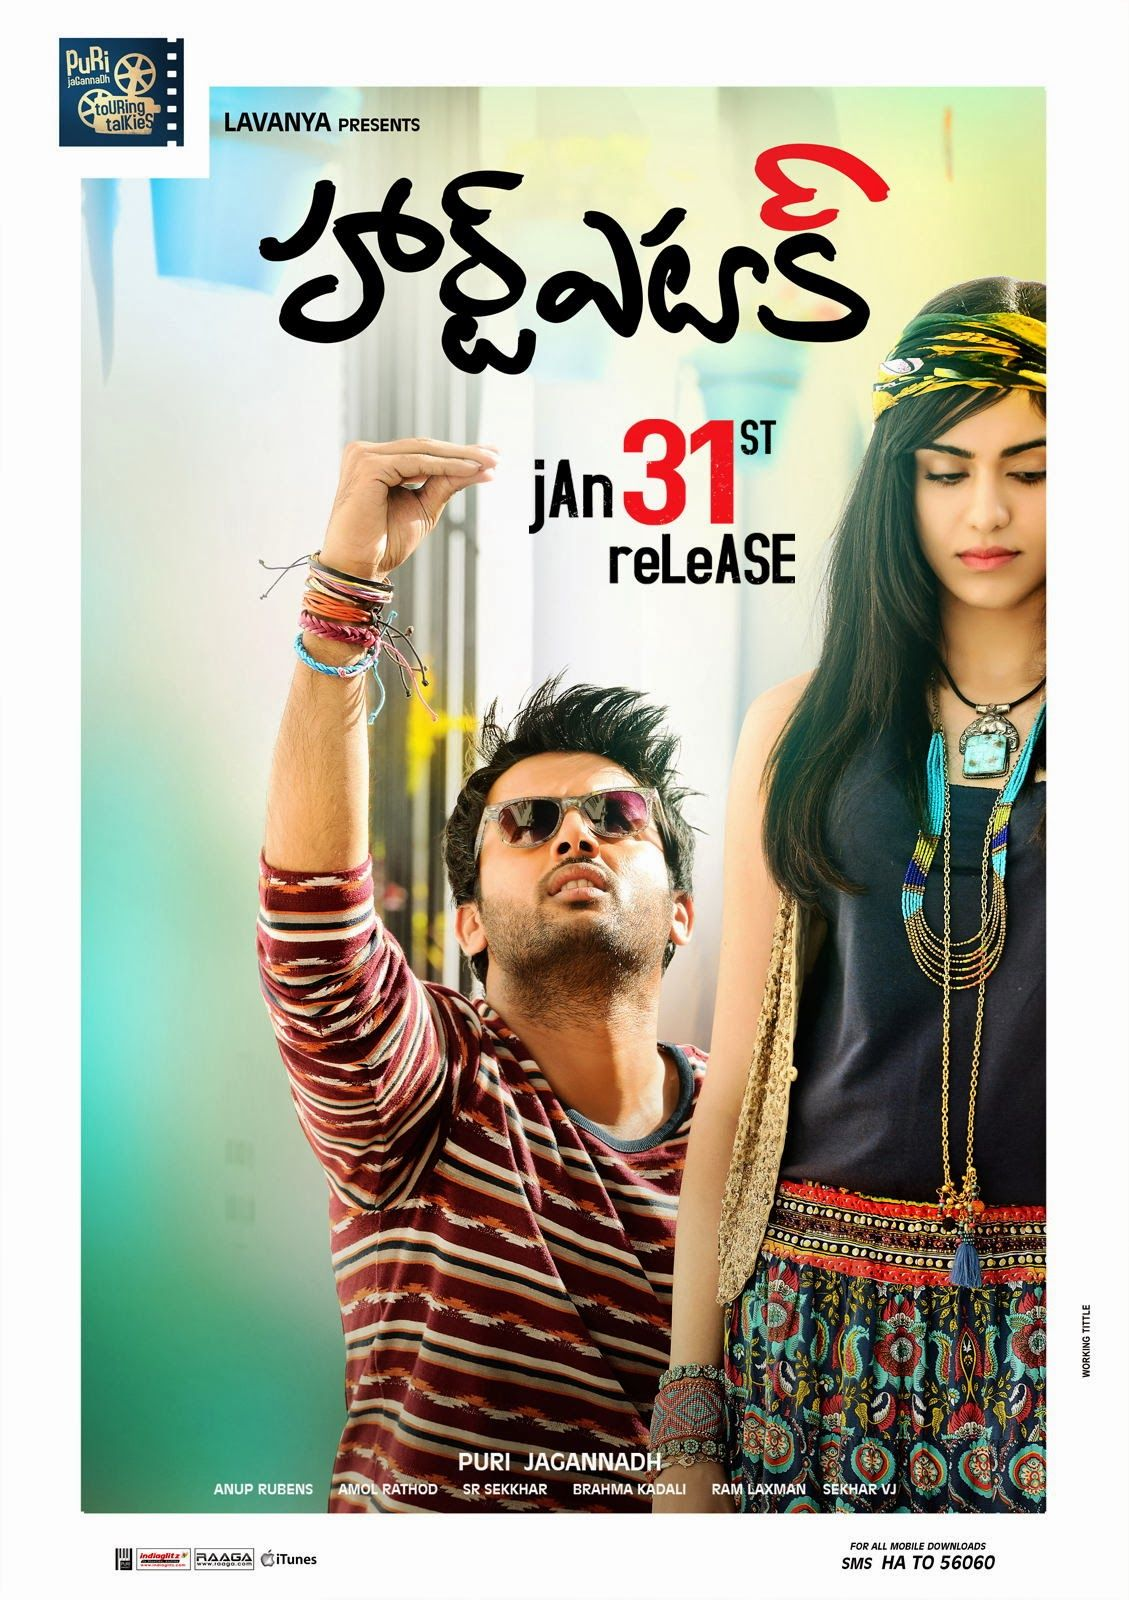 HeartAttack starring Nithiin & Adah sharma set to release this 31st Jan,  2014. Book Your Tickets today in Ticketdada.com   Attack movie, Movies,  Telugu movies